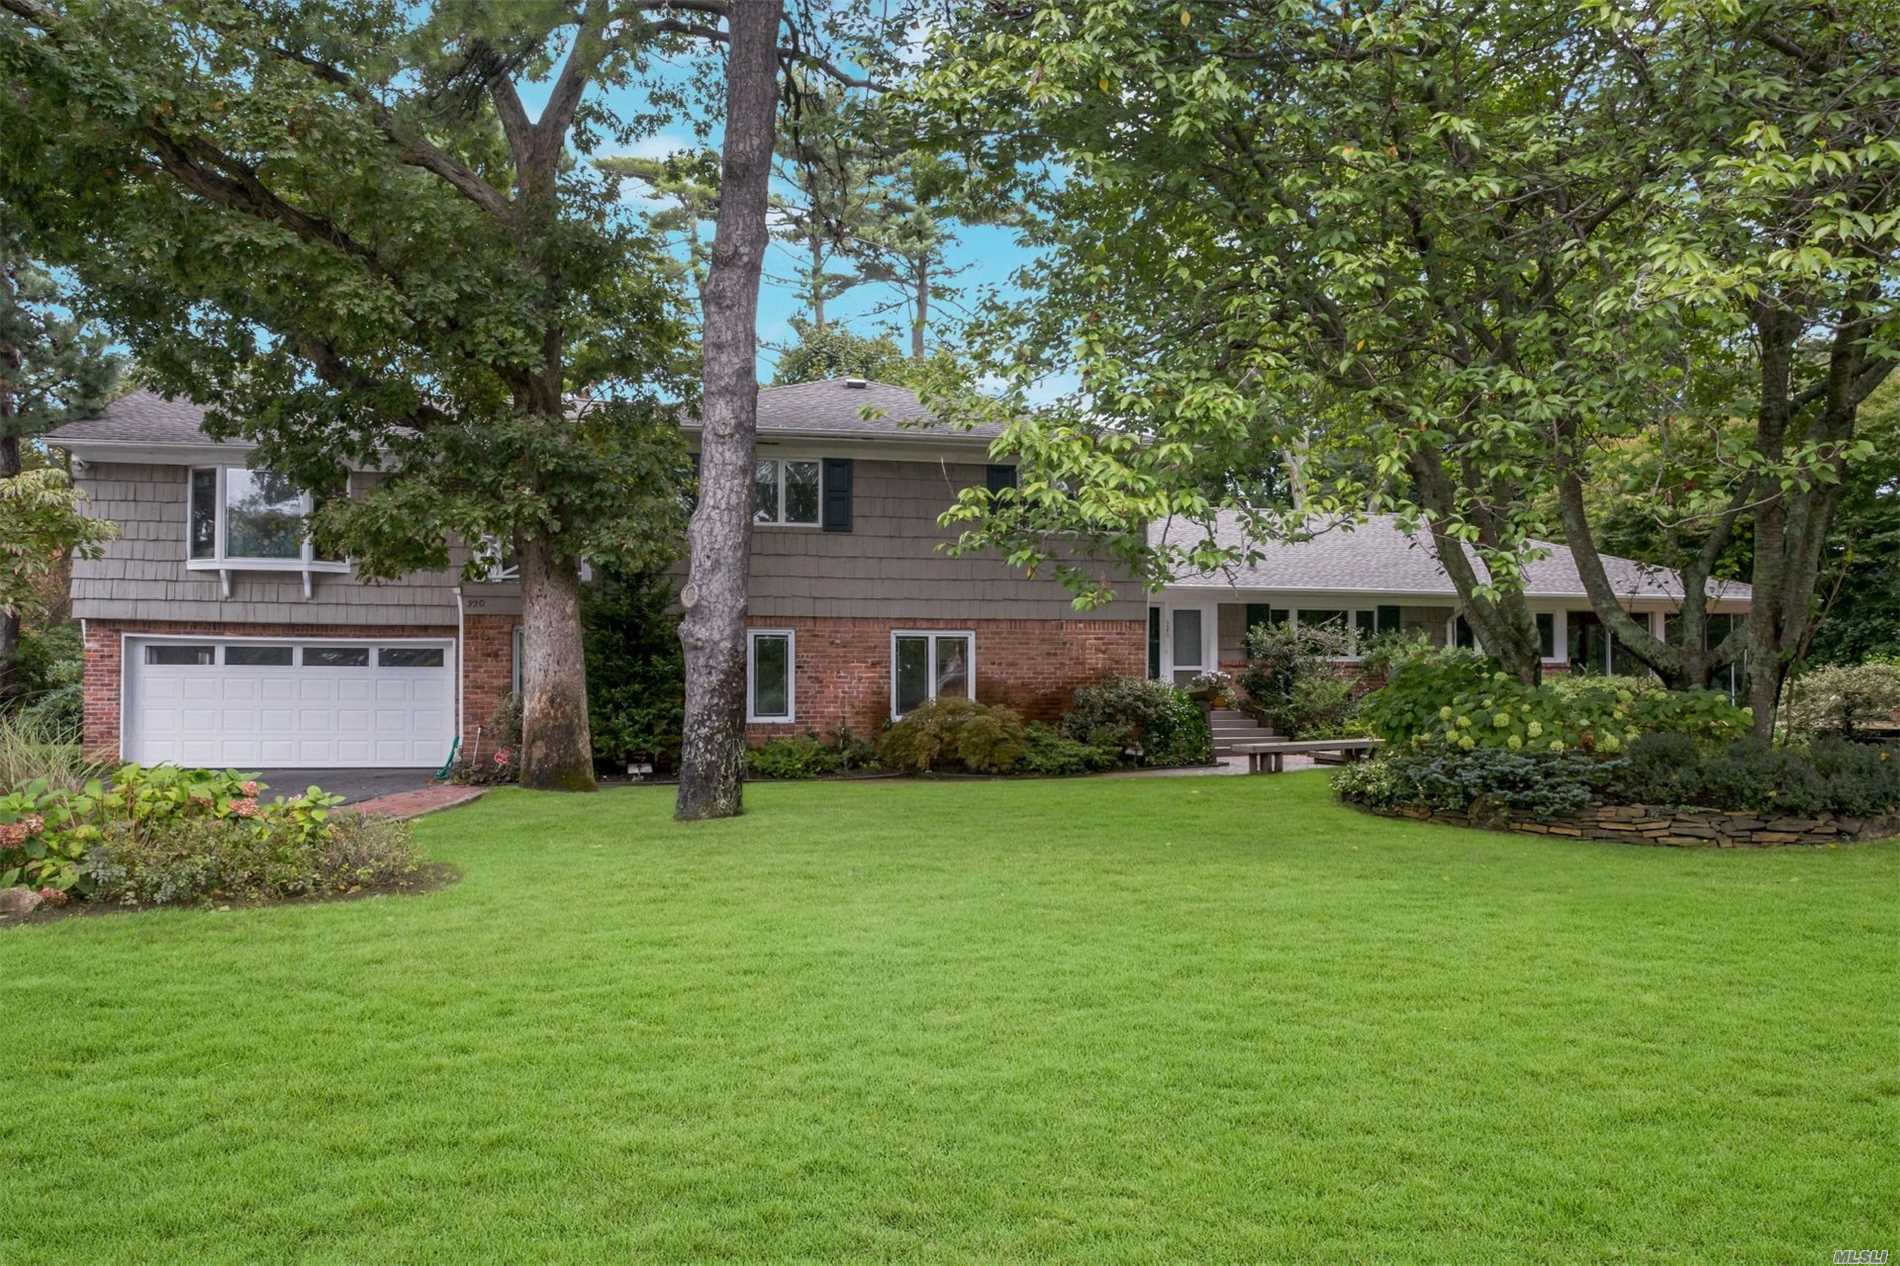 Large Split-Level Home Featuring 4/5 Br And 3 Ba In Hewlett Harbor. Main Level Comprised Of Eat-In Kitchen, Living Room/Dining Room Great For Entertaining, And Large Sun-Room Overlooking Landscaped Garden. 3 Bedrooms On 2nd Floor Including Luxurious Master Suite W/ Separate Library. Lower Level Family Room, Rec. Room, And Office Complete This Substantial Home. Sd #20. New Roof Appx. 3 Years Old. Att. 2-Car Garage.